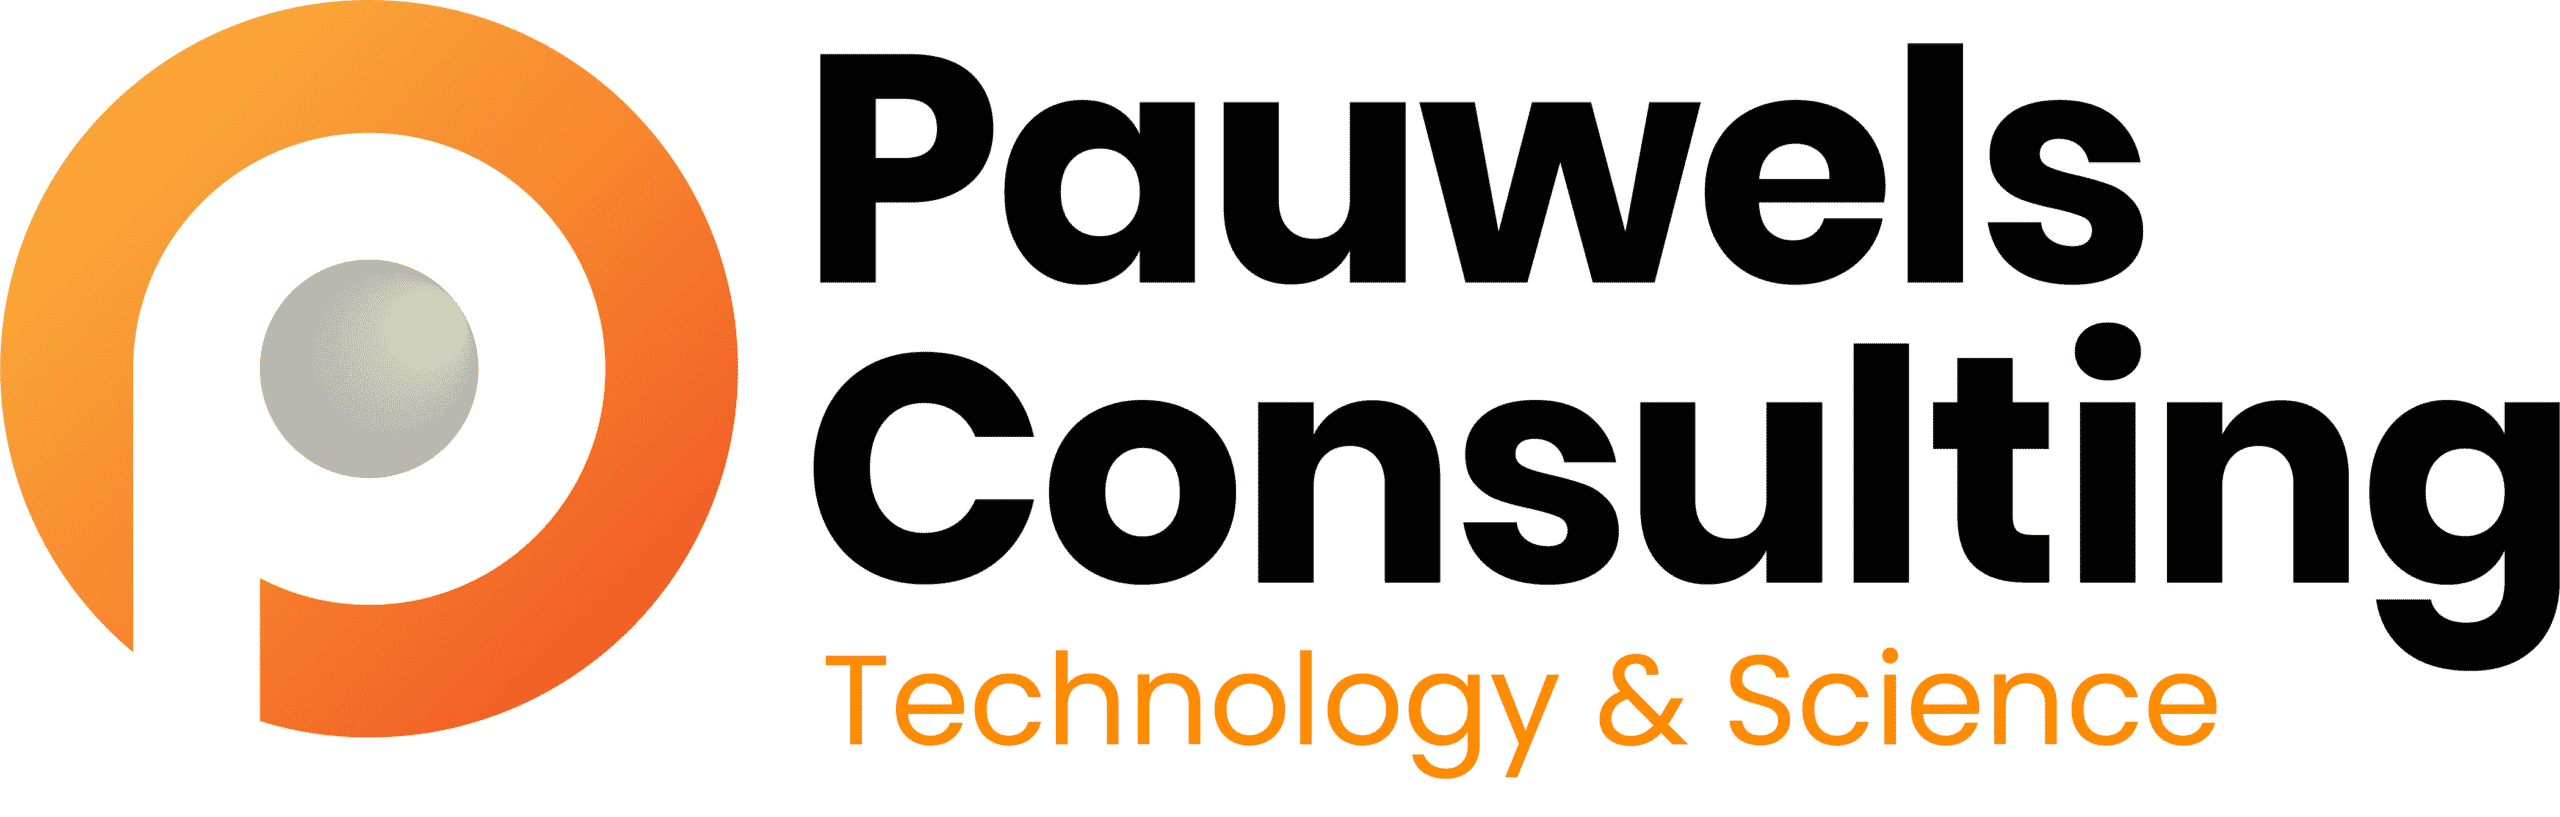 Pauwels Consulting - Engineering, life sciences & it consultancy en project sourcing